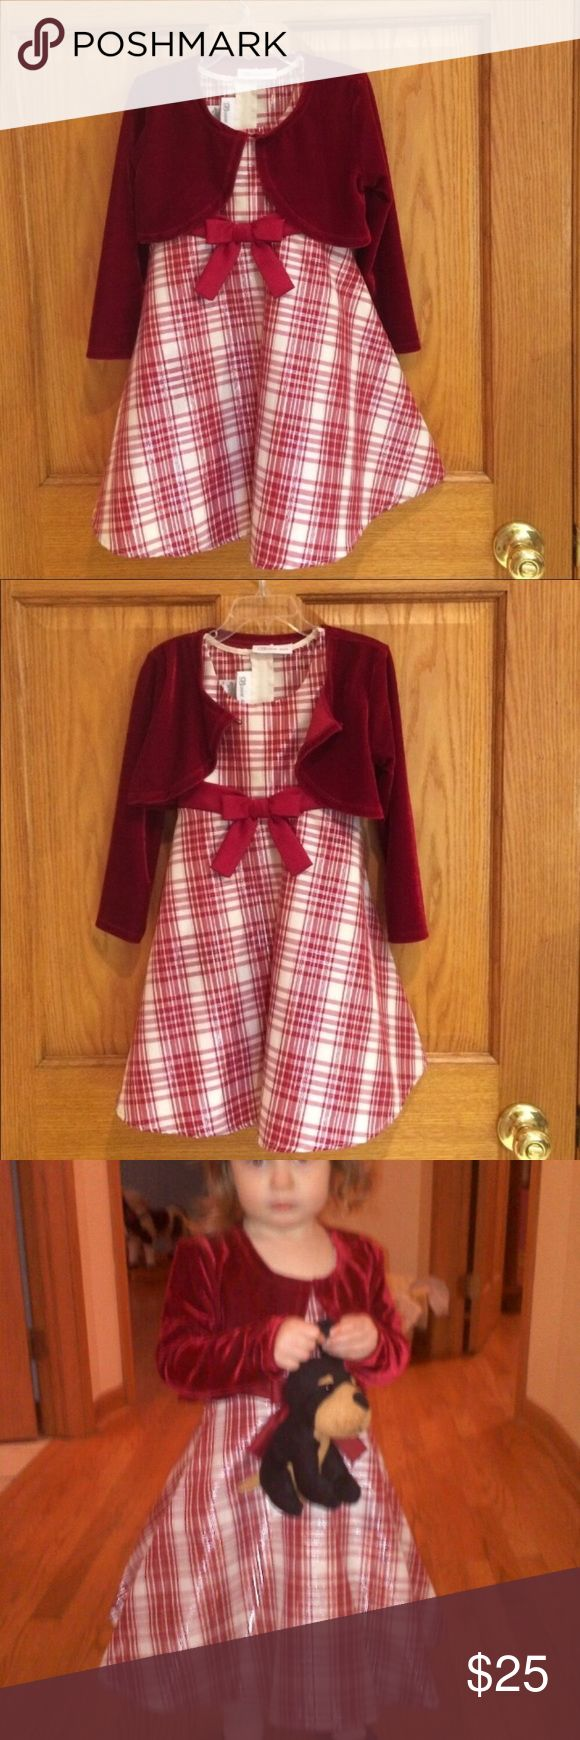 Bonnie Jean Plaid Dress With Velvet Jacket Beautiful cream & red with a silver metallic plaid dress with red velvet jacket. Dress is 94% polyester and 6% metallic. Jacket is 100% polyester. Zips and ties in the back with beautiful red satin. Dress has a liner. Bonnie Jean Dresses Formal